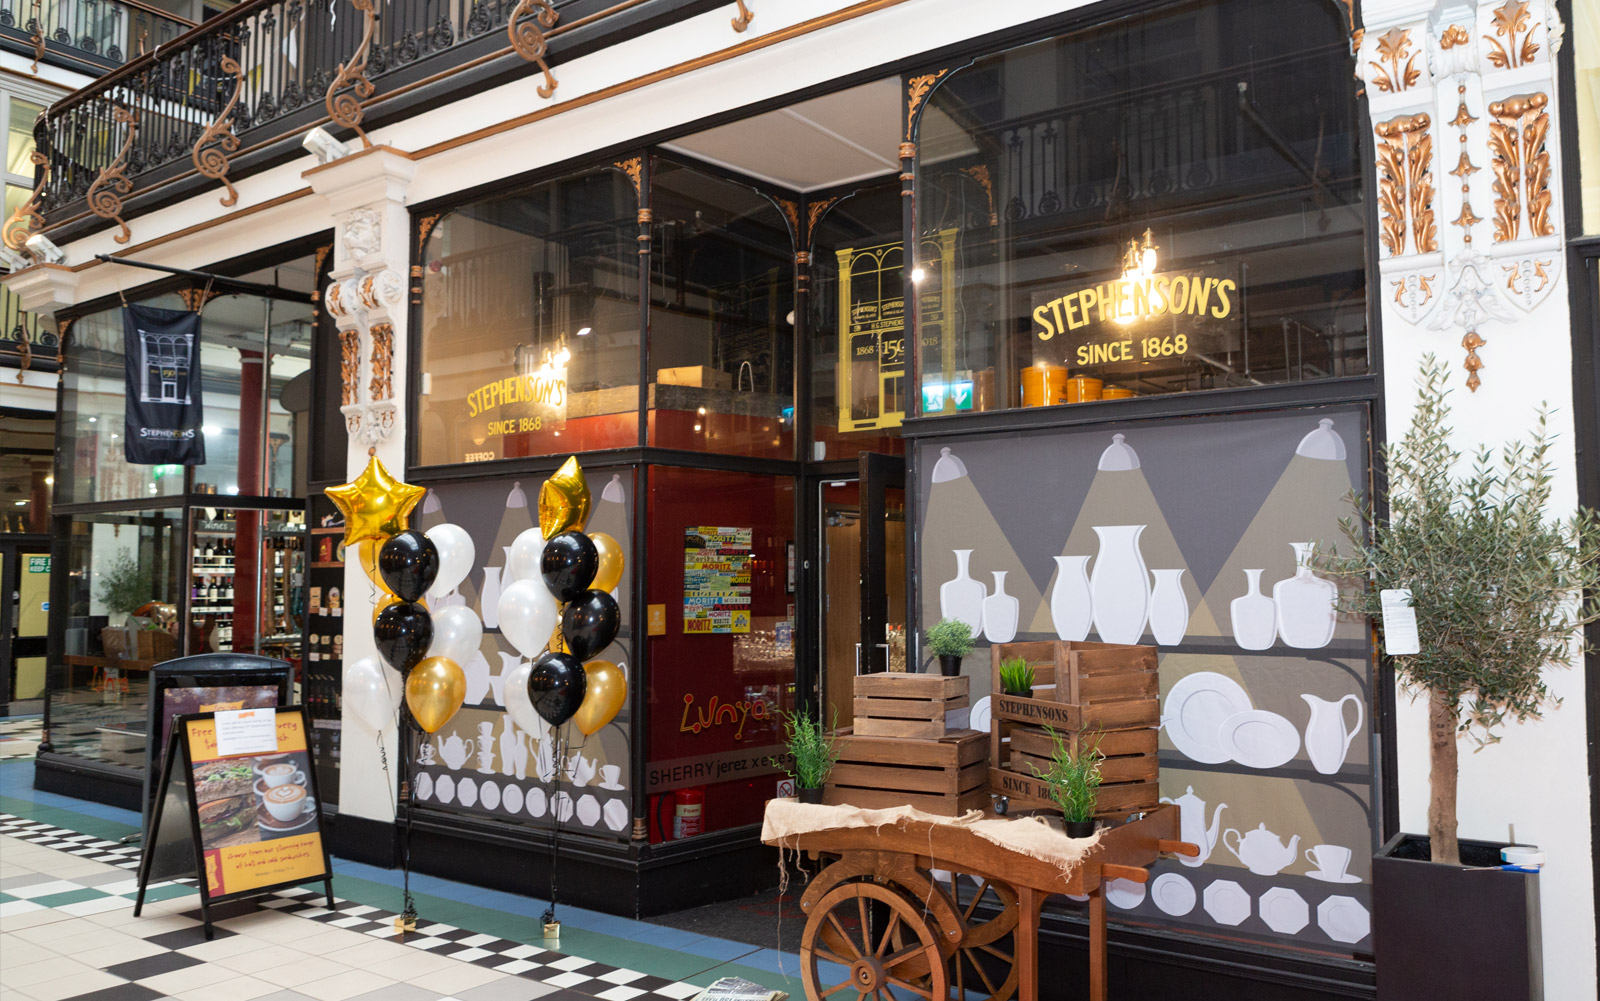 Lunya Manchester was dressed up with graphics and window displays inspired by the shops original tenants